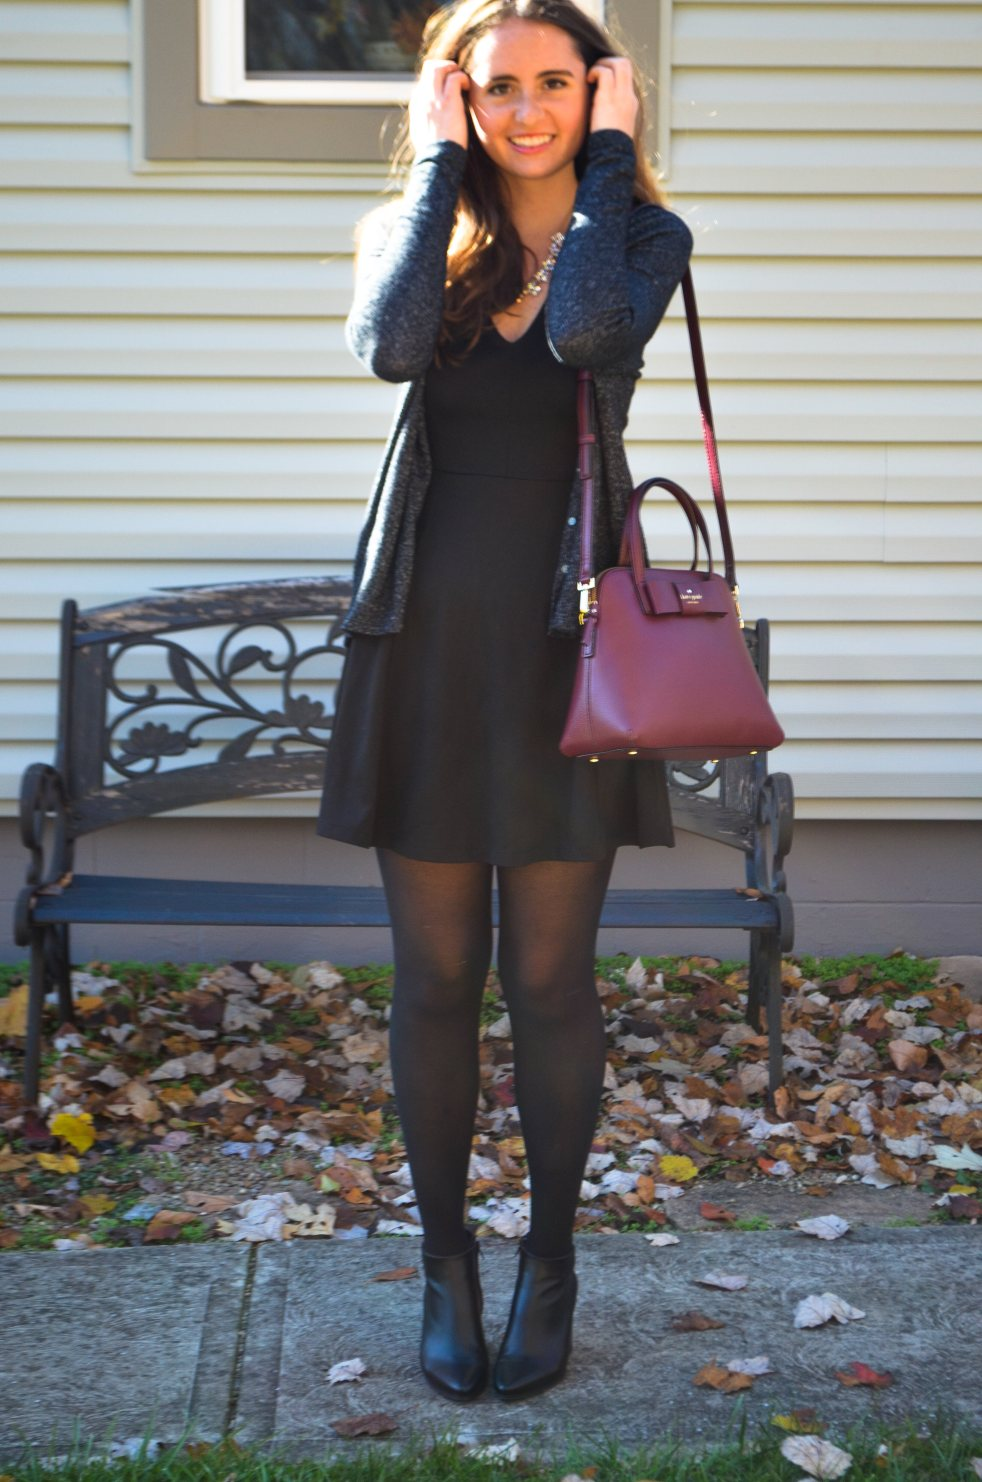 ootd outfit of the day fall thanksgiving winter christmas holiday style preppy classic moments of a mermaid momentsofamermaid blog pittsburgh kate spade bow bag autumn what to wear how to wear dress cardigan h&m american eagle zara ankle boots leather festive stylish pinterest inspiration maroon burgundy purse cozy warm black gray